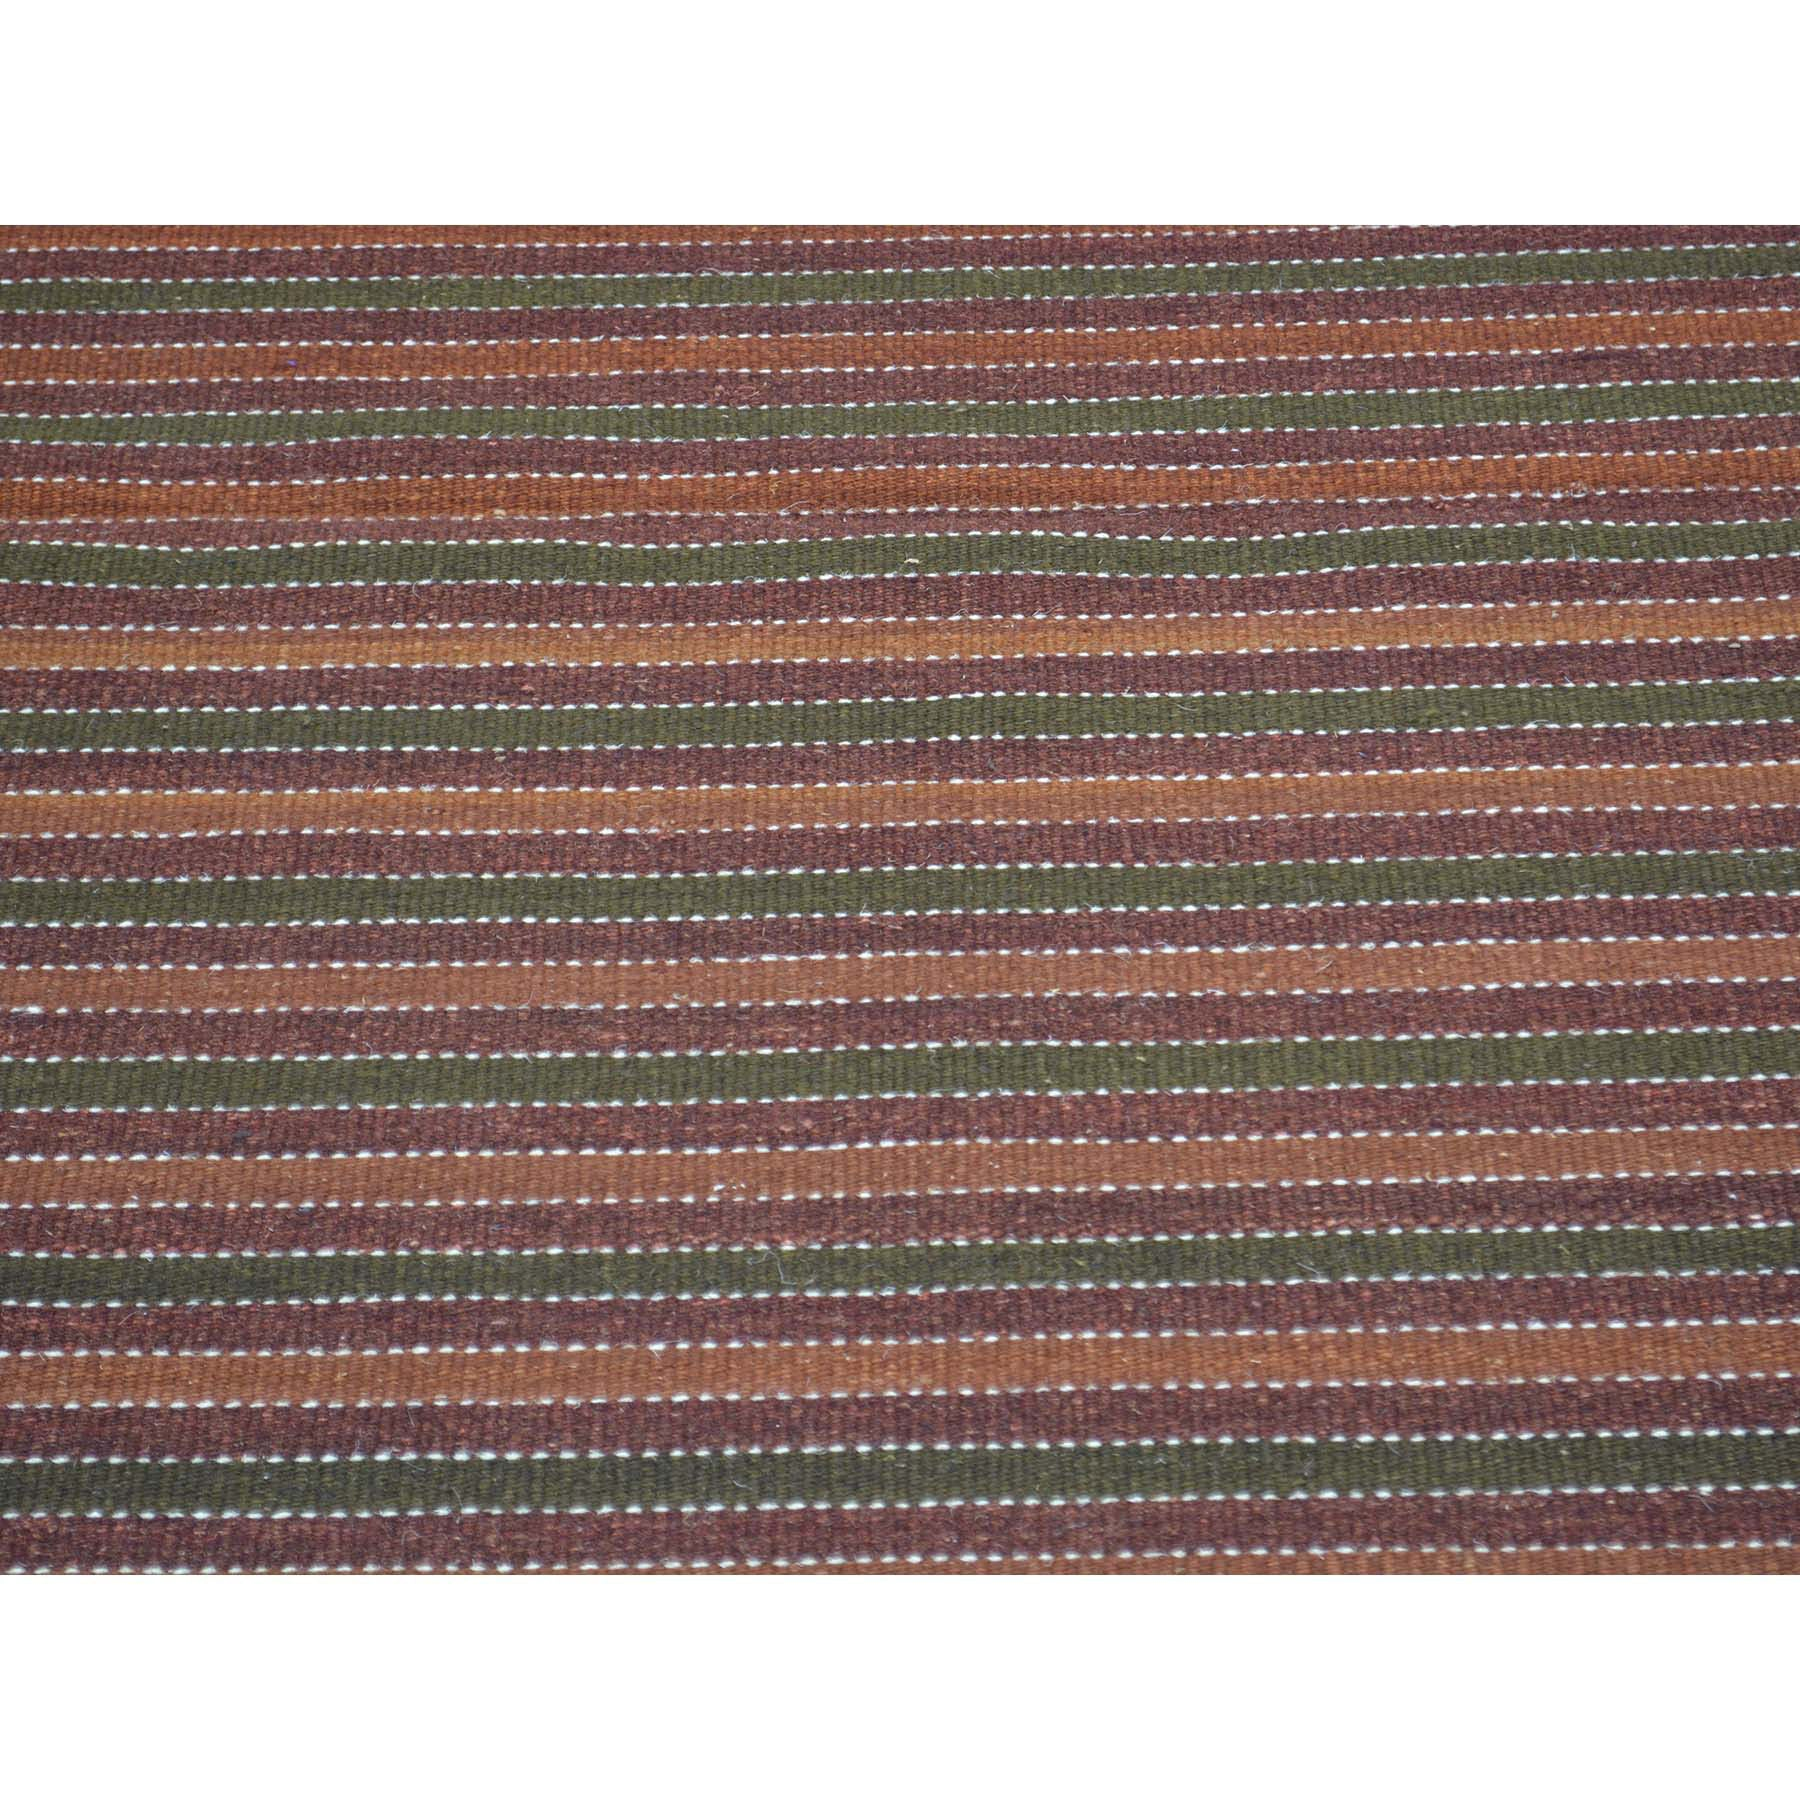 "Handmade Flat Weave Rectangle Rug > Design# SH30113 > Size: 3'-0"" x 4'-10"" [ONLINE ONLY]"